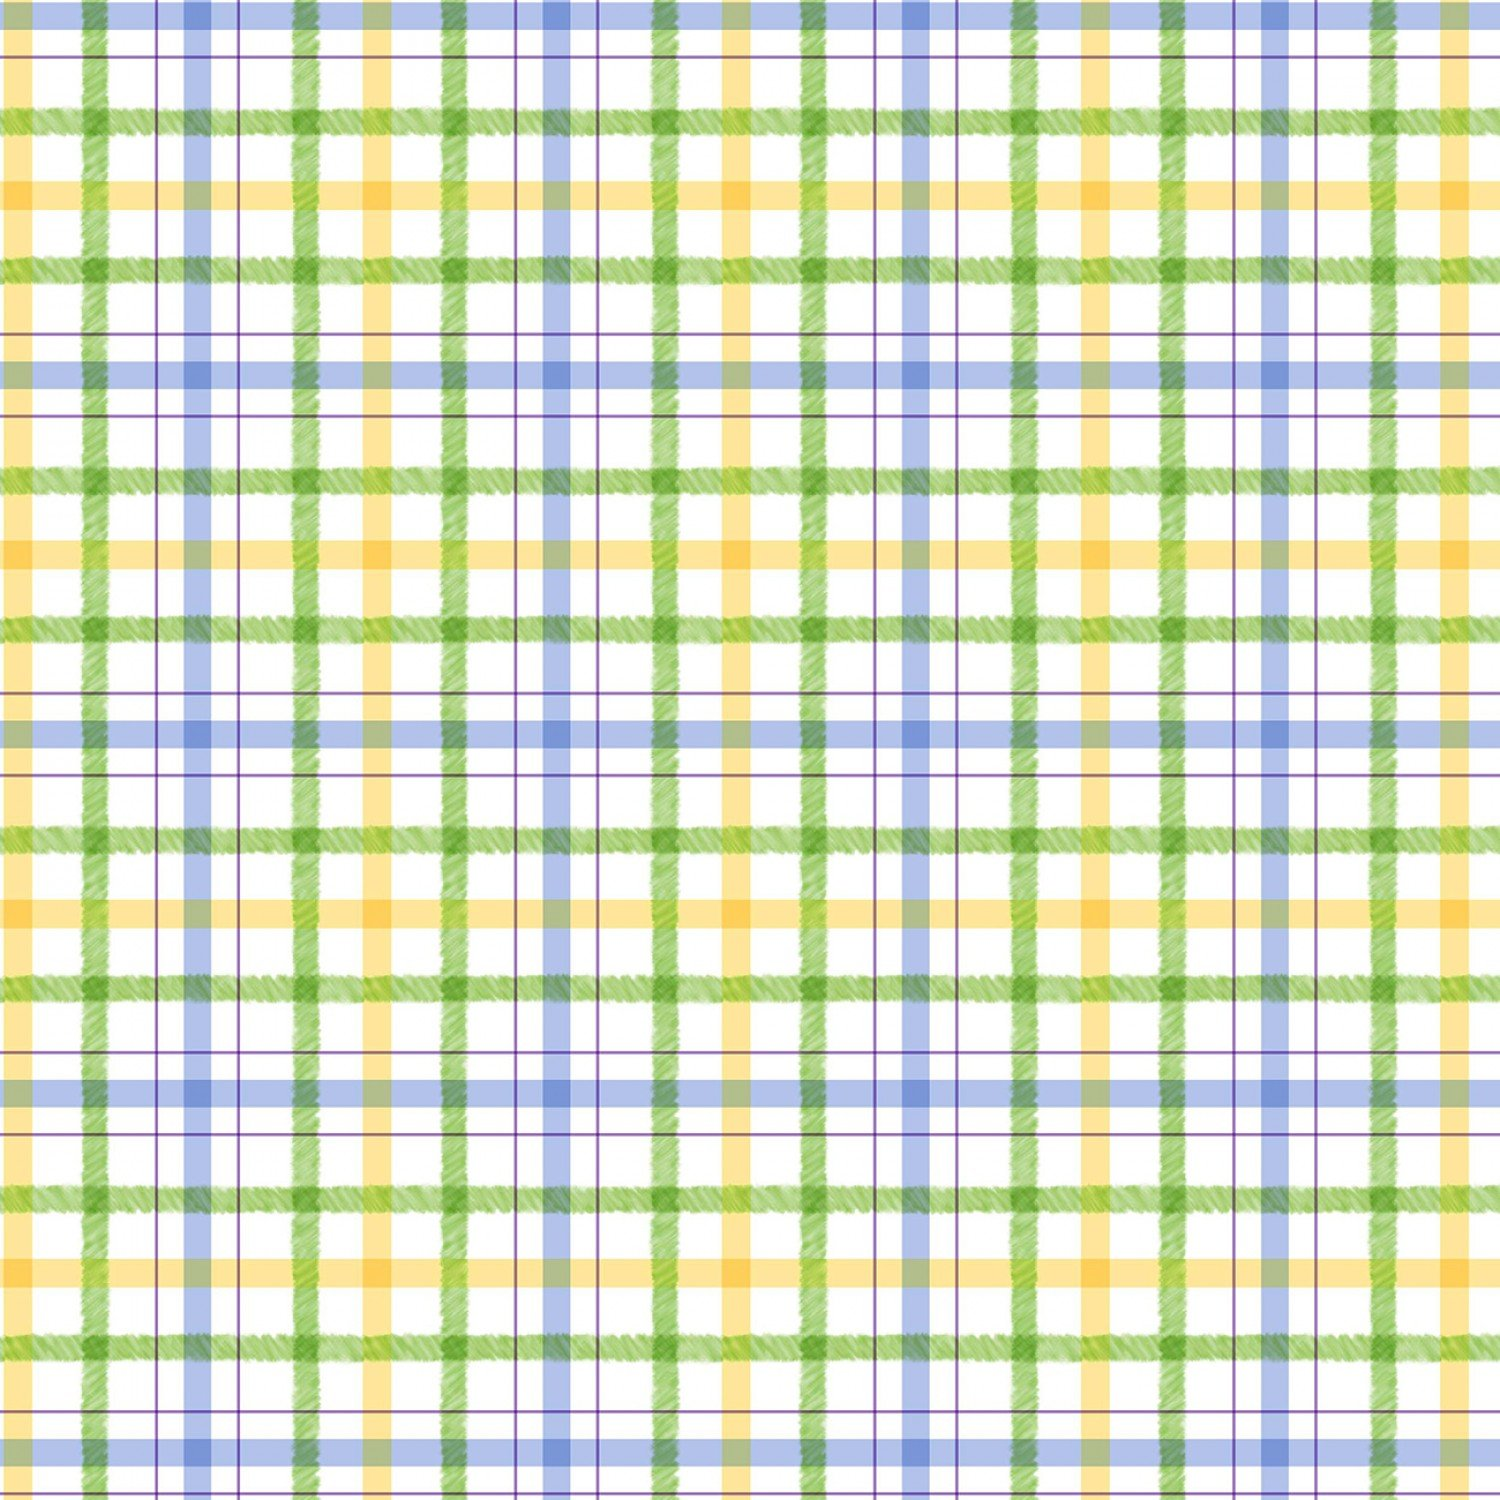 Honey Bunny Children's Green Plaid Play Cotton Fabric from Michael Miller